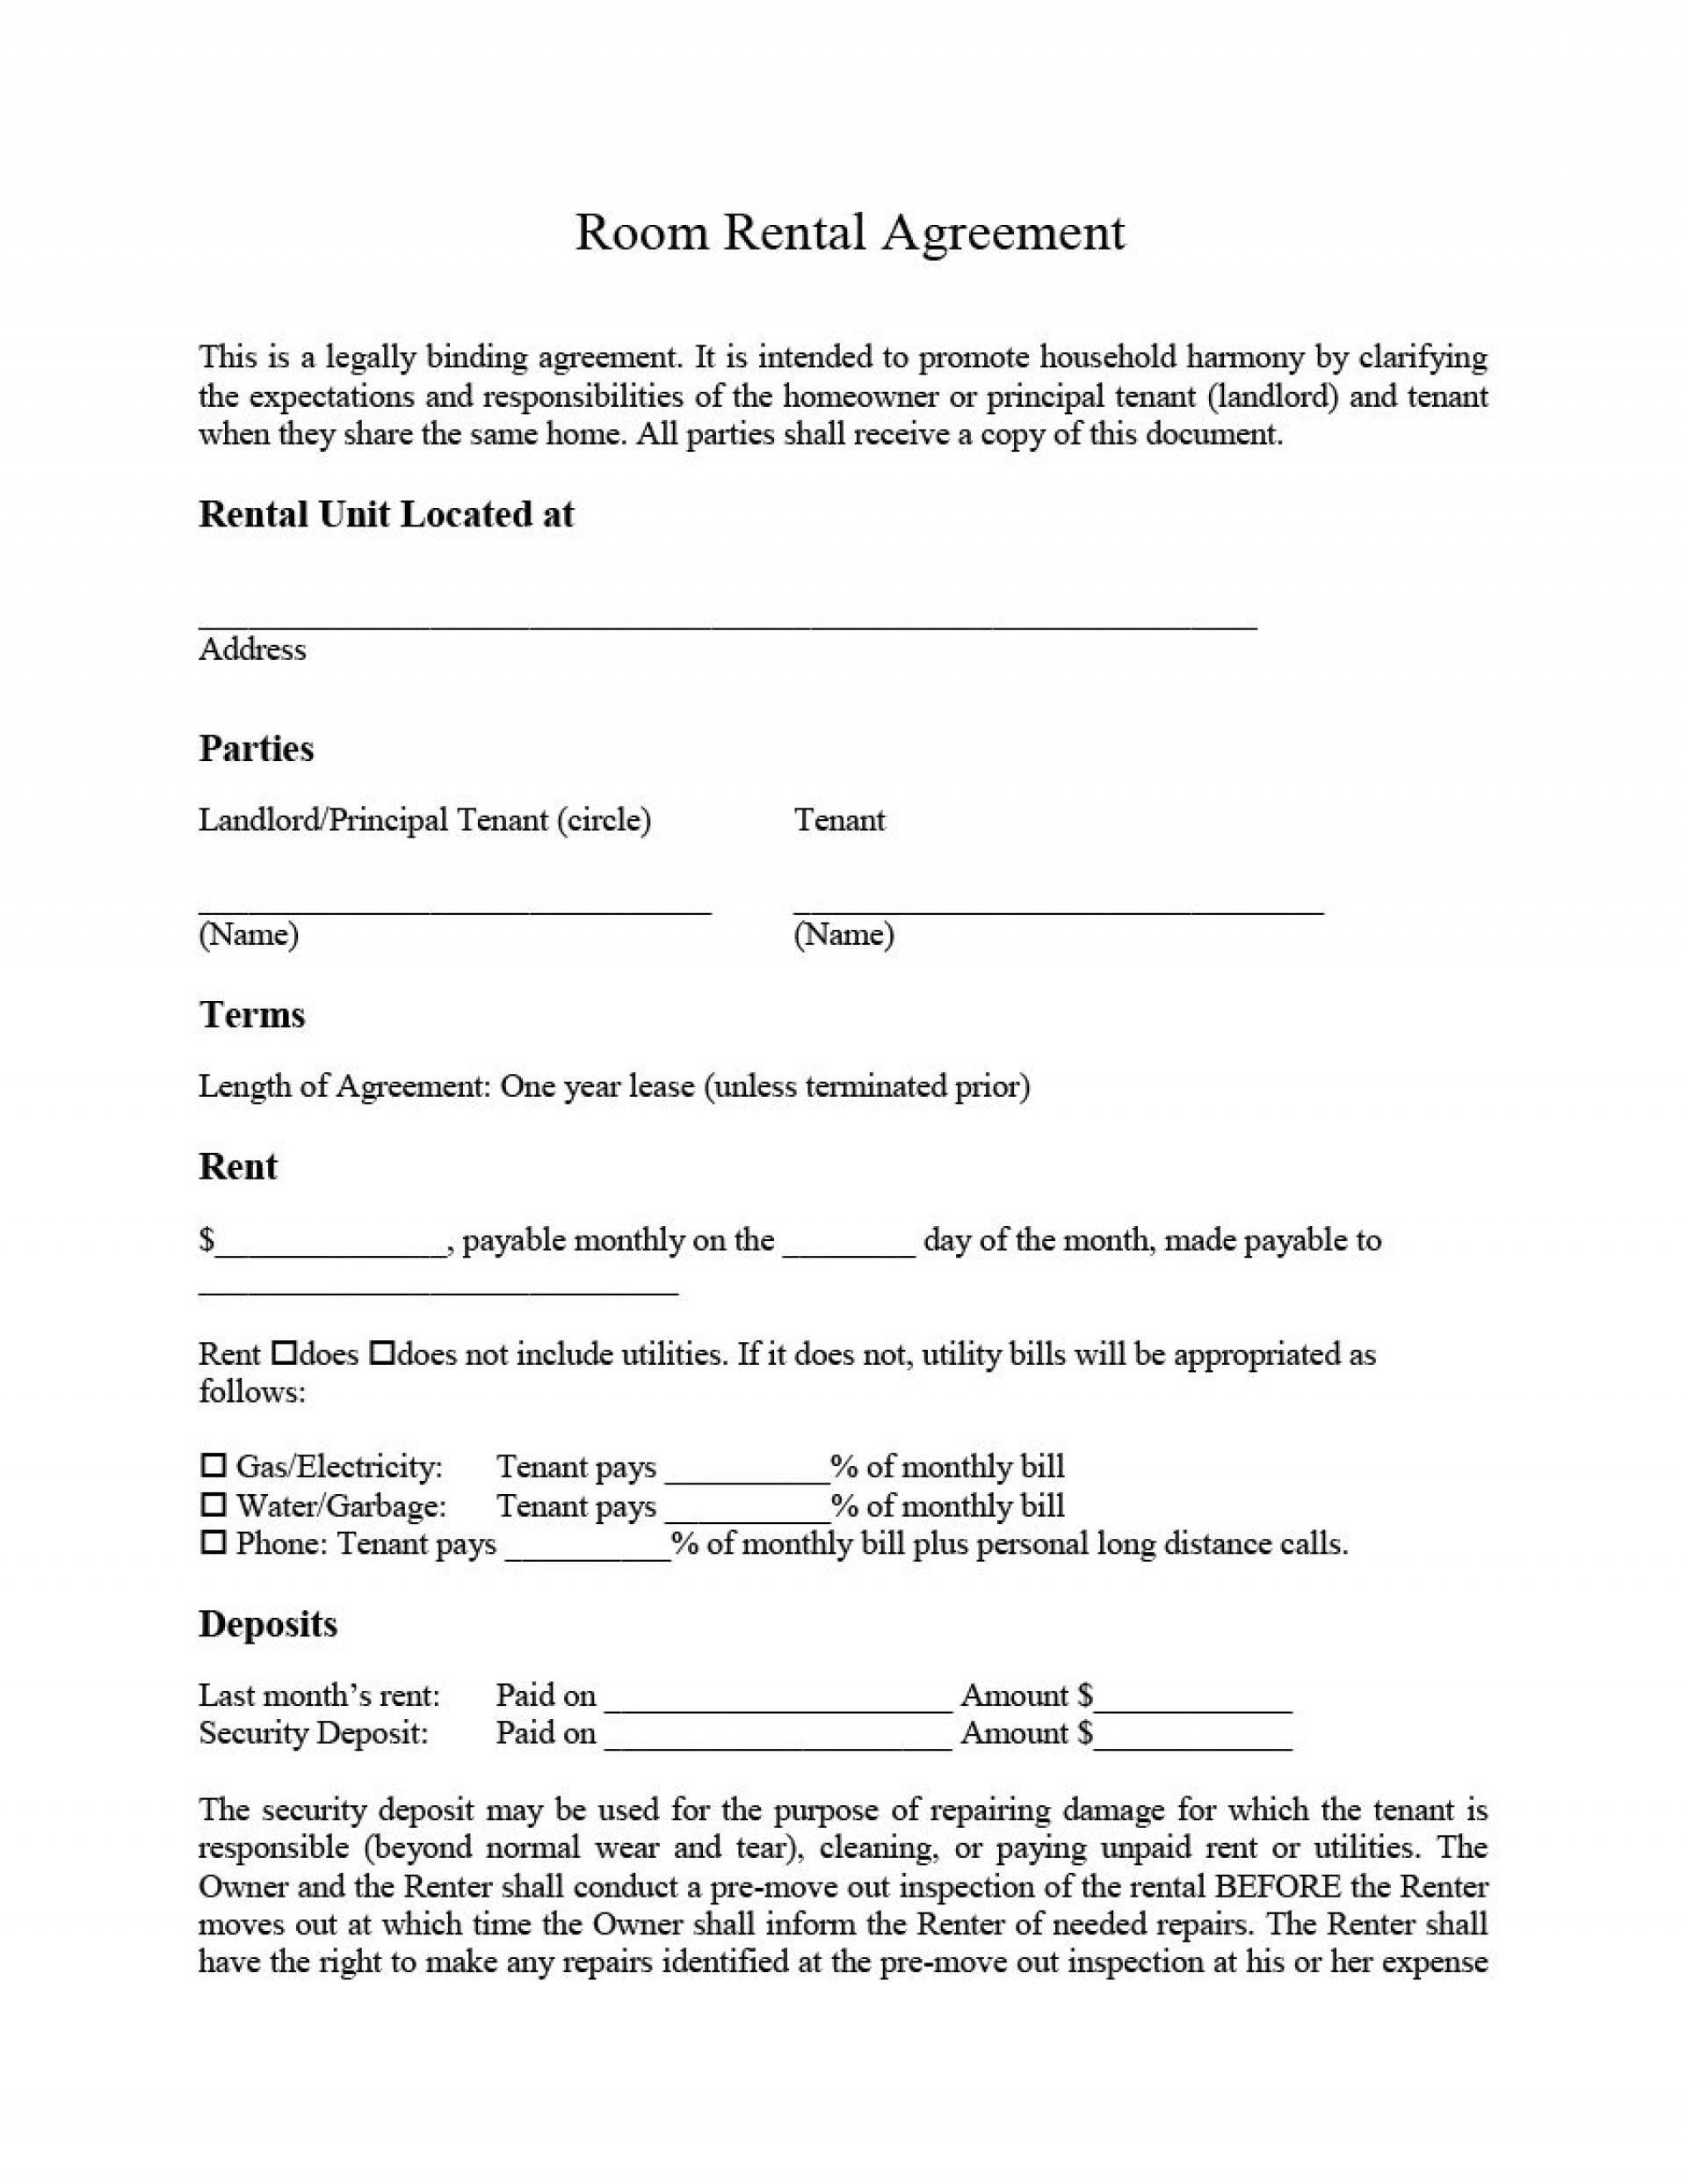 006 Archaicawful Room Rental Agreement Template Ireland Concept 1920